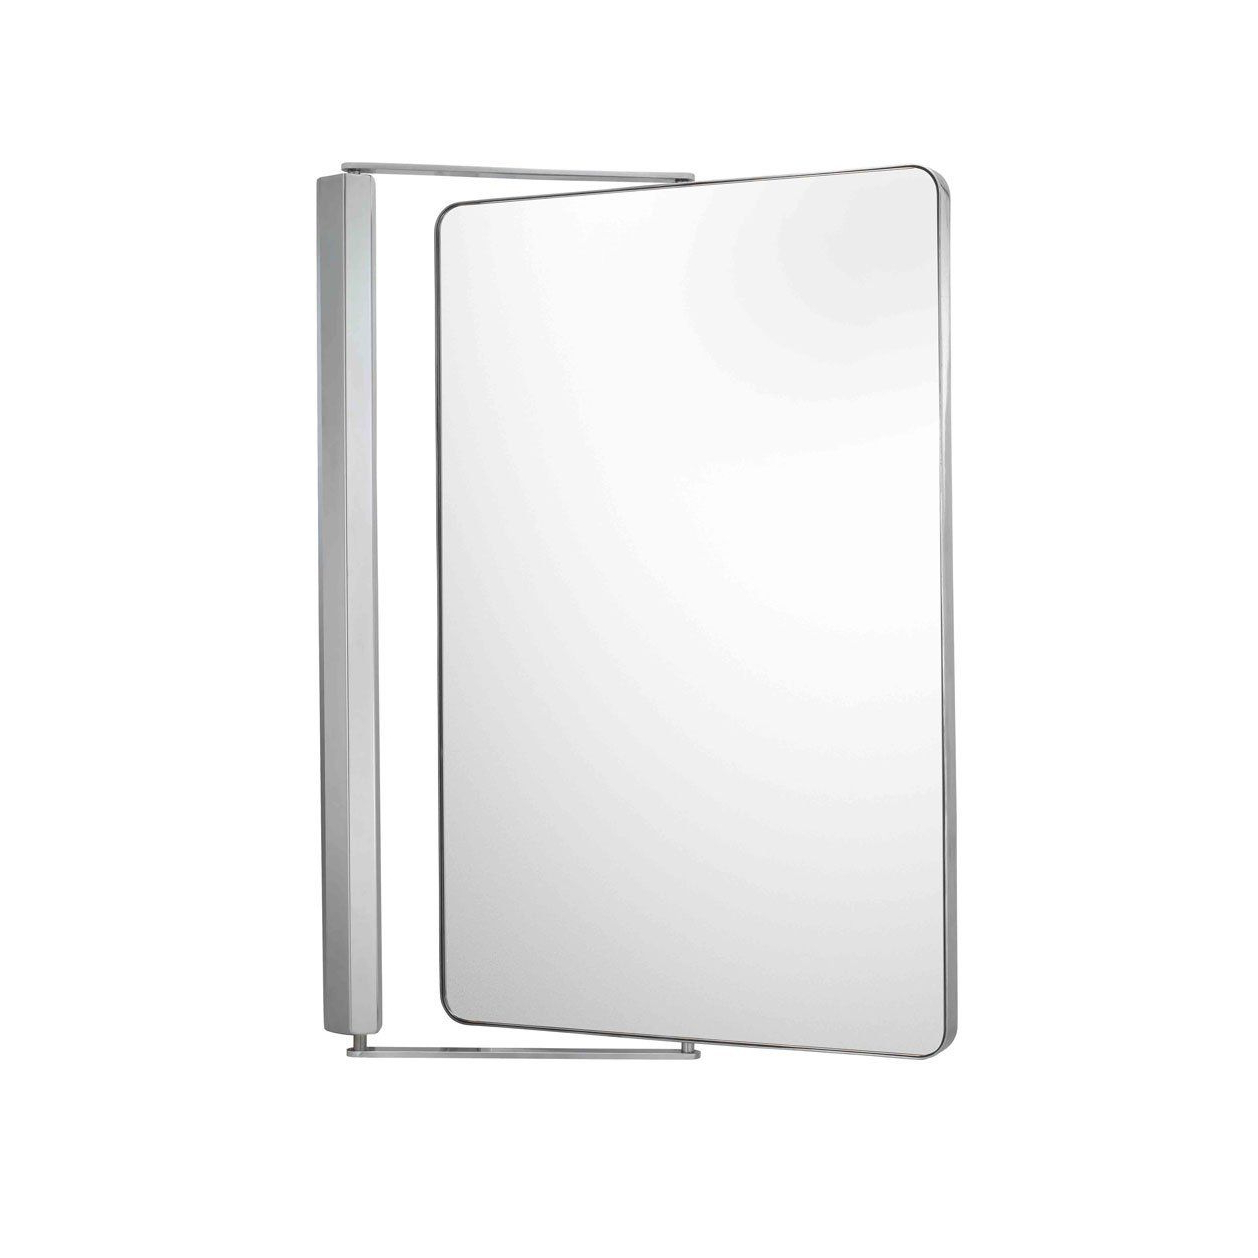 Extension Arm Wall Mirrors Regarding Well Liked Amazon – Aptations 23345 Extension Arm Wall Mirror, Chrome (Gallery 18 of 20)